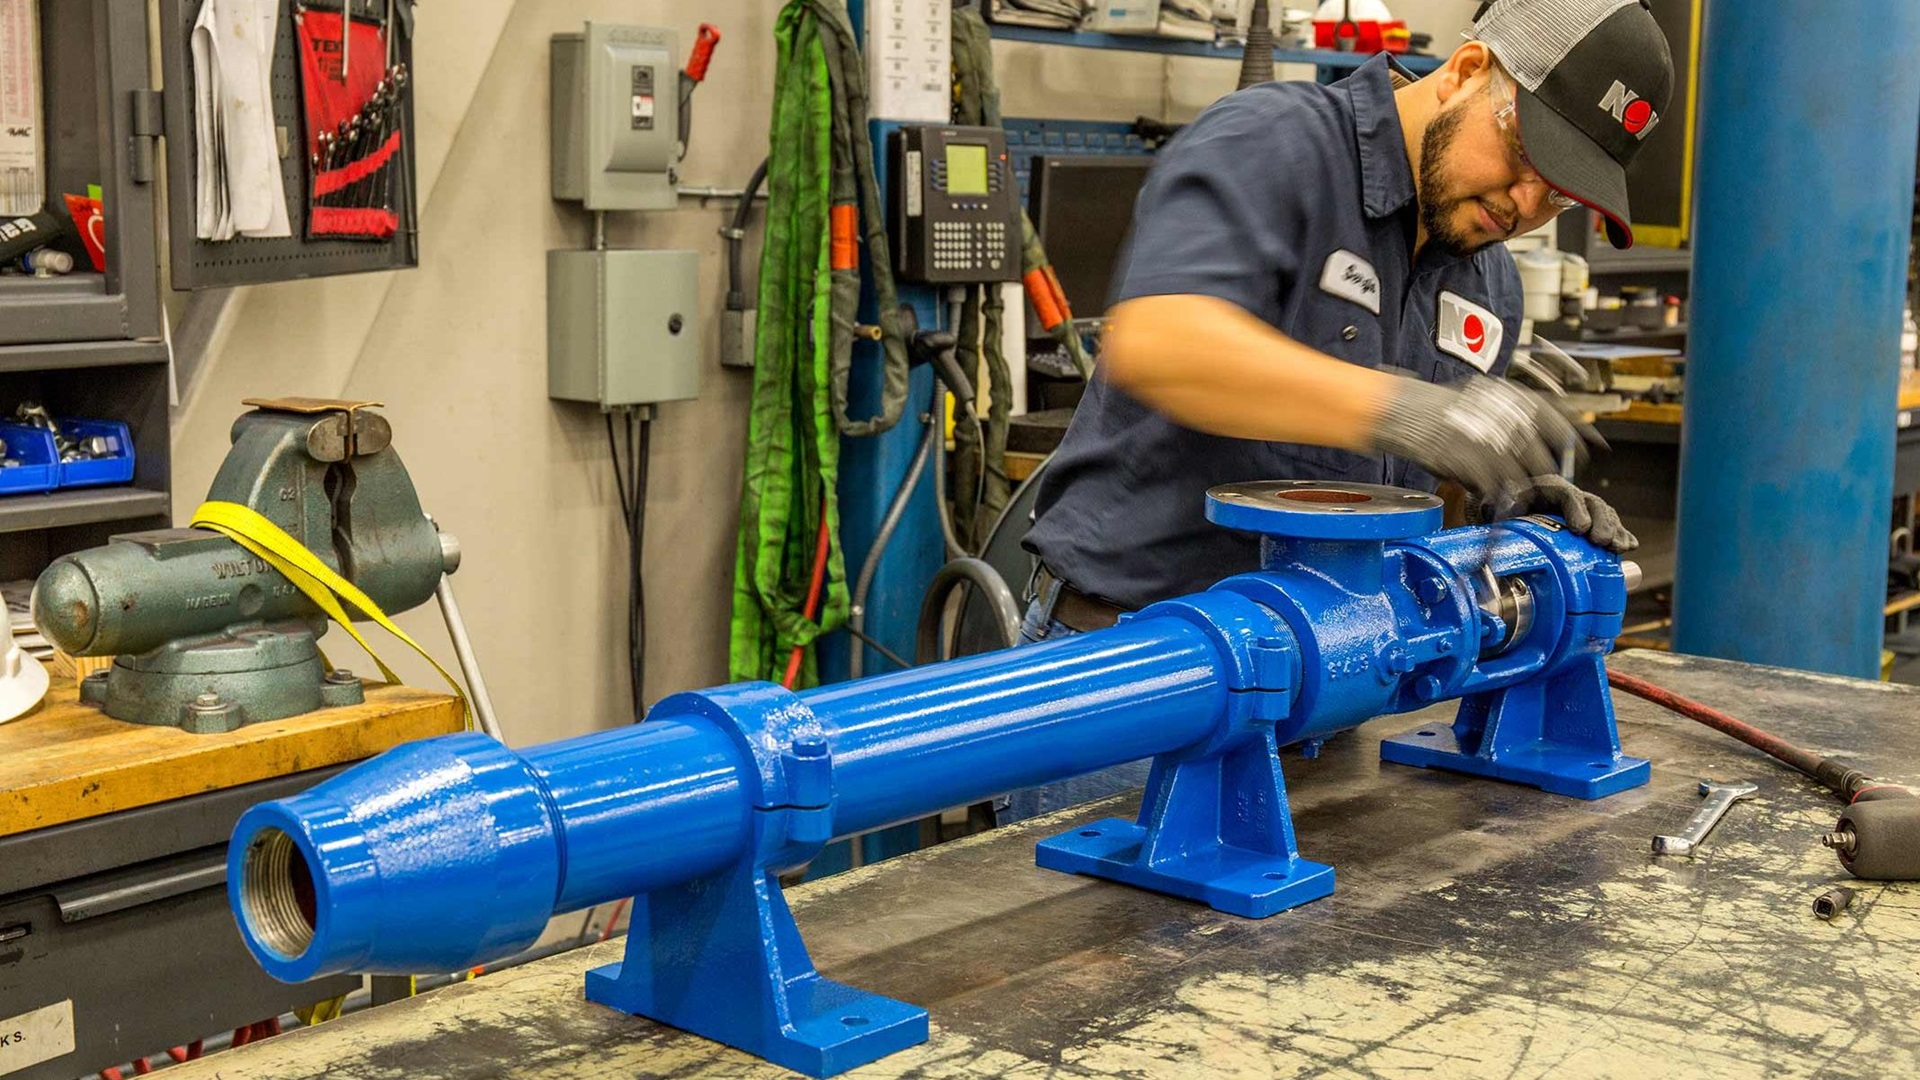 An NOV employee working on an L-Frame Pump in a workshop.